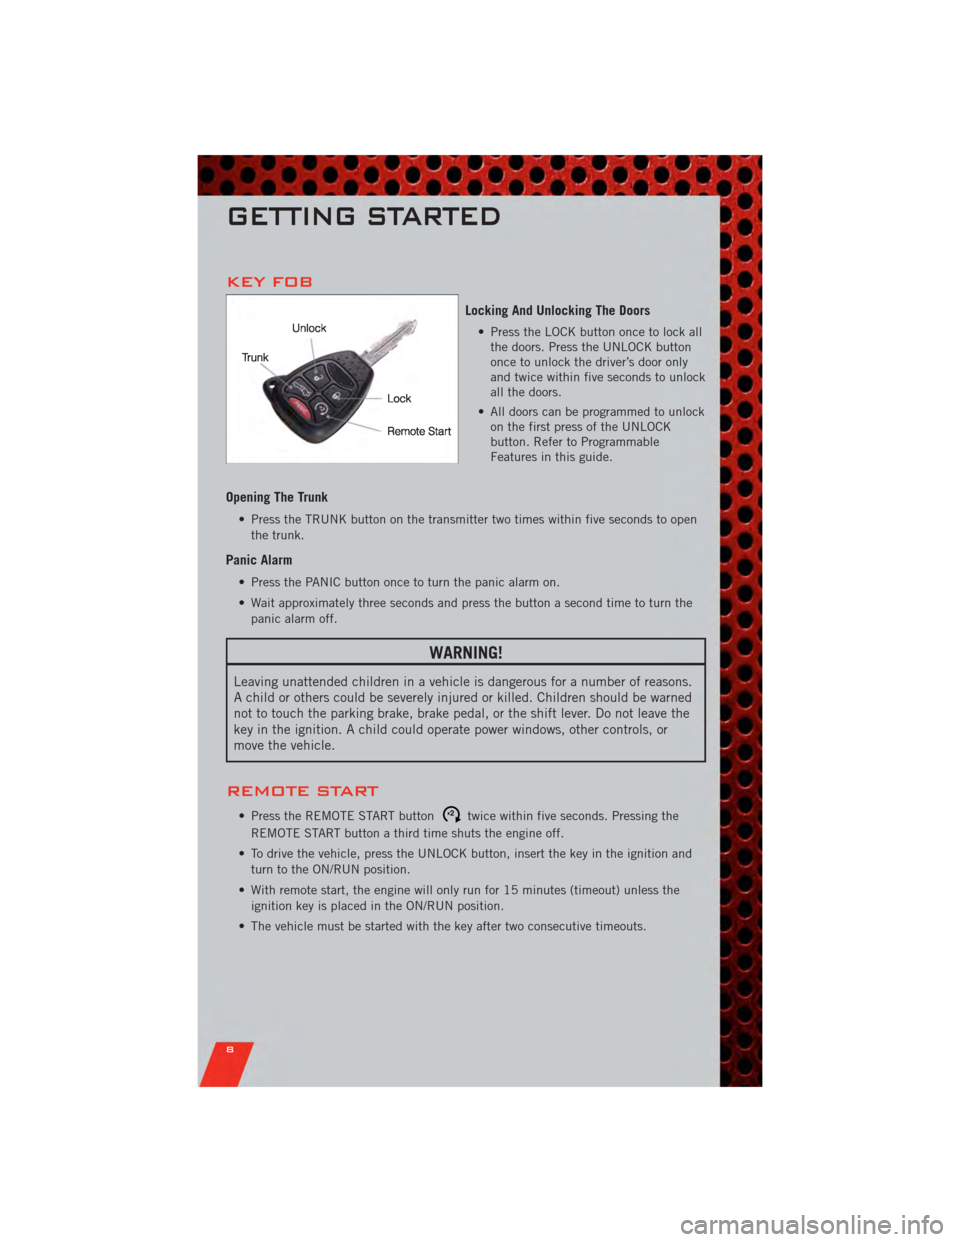 DODGE AVENGER 2011 2.G User Guide KEY FOB Locking And Unlocking The Doors • Press the LOCK button once to lock allthe doors. Press the UNLOCK button once to unlock the driver's door only and twice within five seconds to unlock all